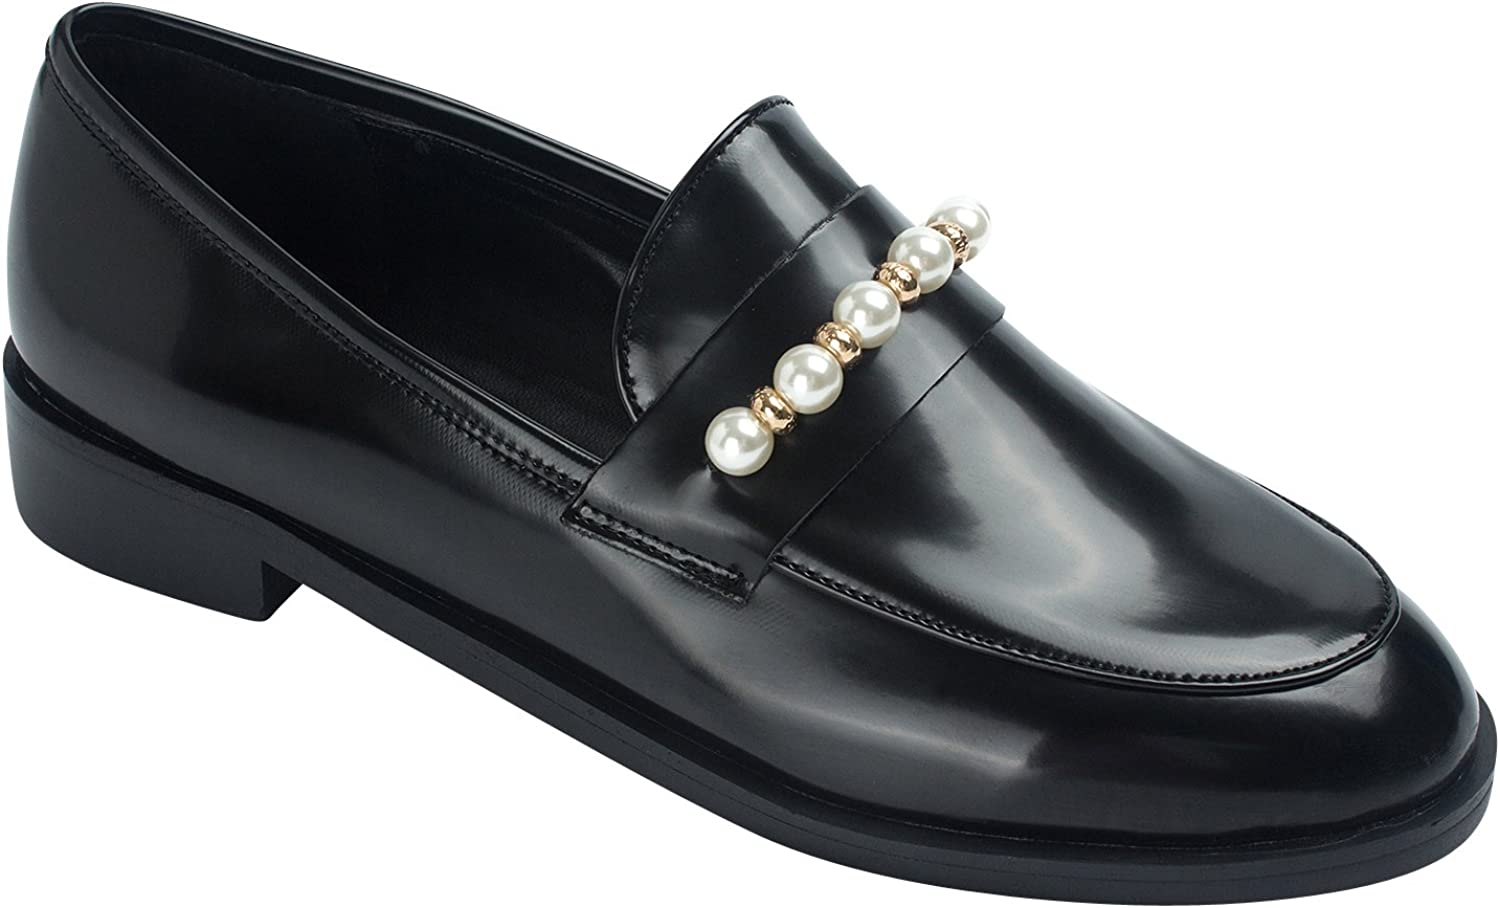 AnnaKastle Womens Classic Black Loafer Flats shoes Pearl